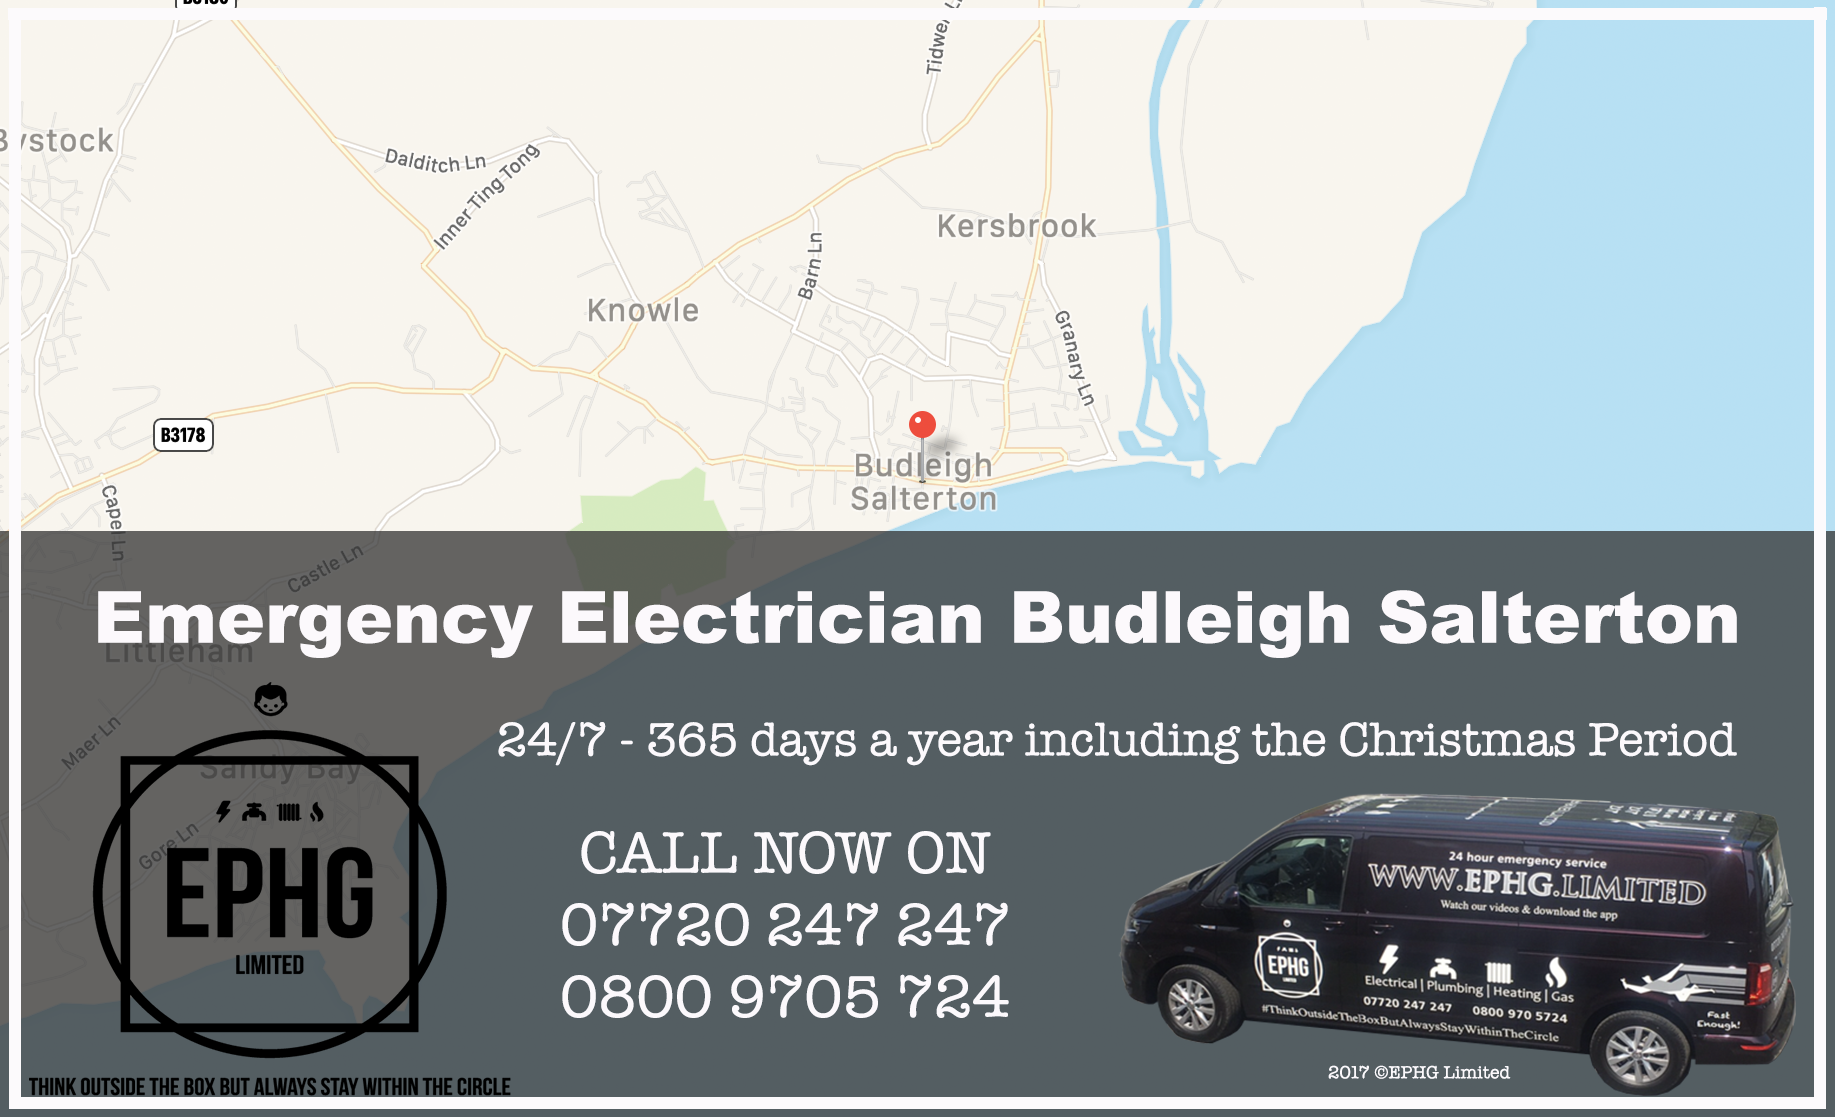 Emergency Electrician Budleigh Salterton